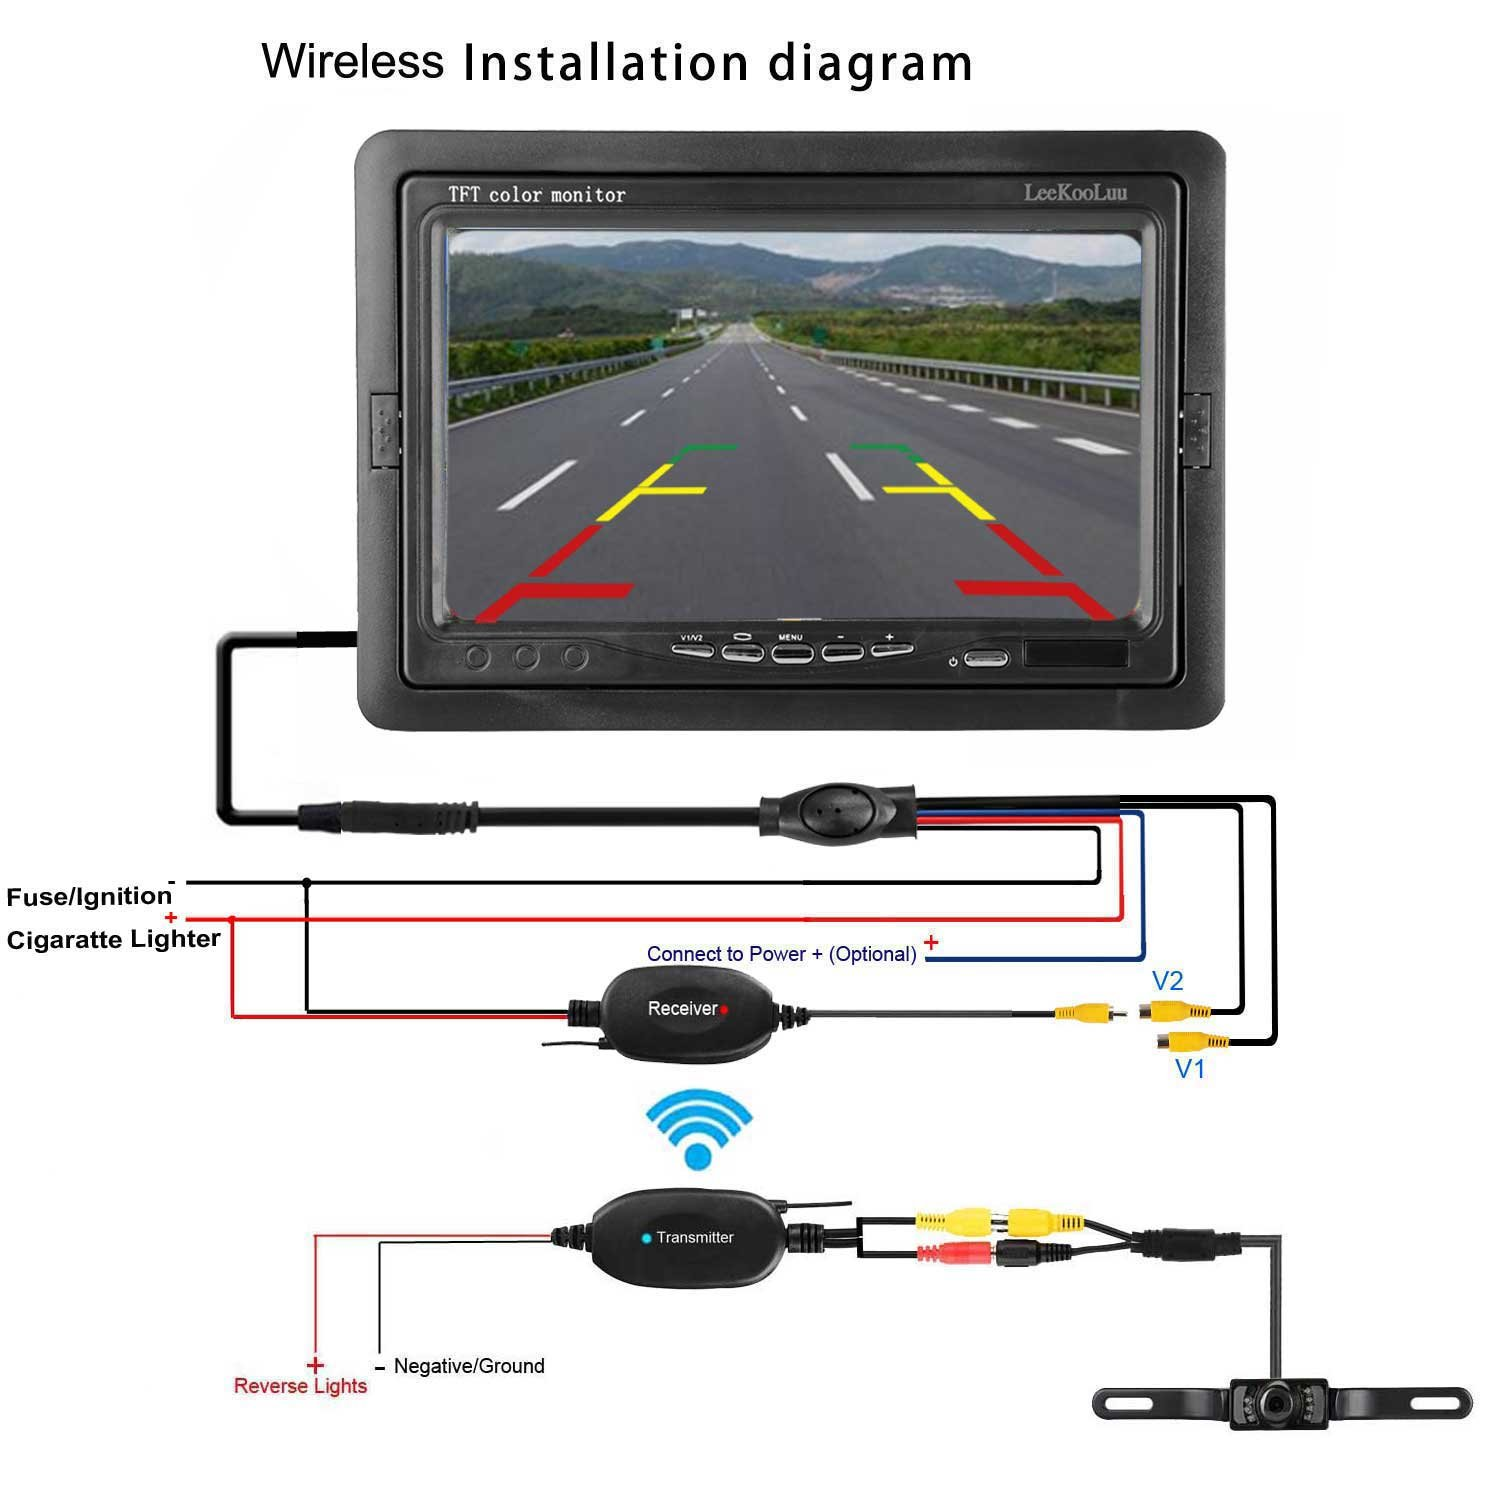 Emmako Backup Camera Wireless And Monitor Kit For Car Plcm7200 Wiring Diagram Vehicle Truck Van Caravan Camper Parking System 7 Tft Display Rear View Night